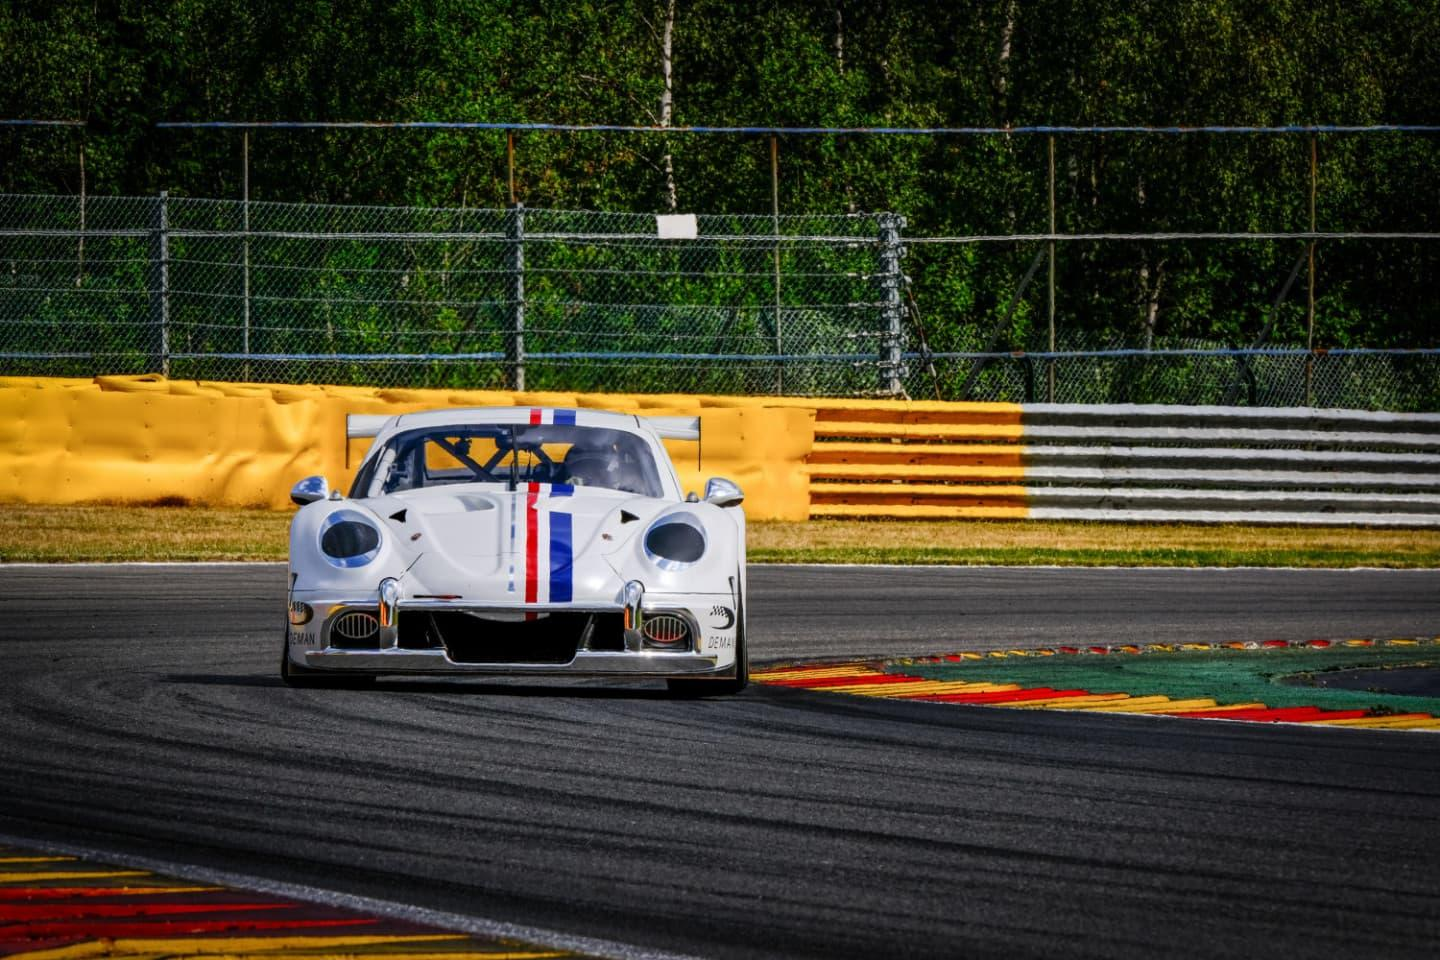 posche-24-horas-spa-francorchamps-blancpain-gt-herbie-2019-26